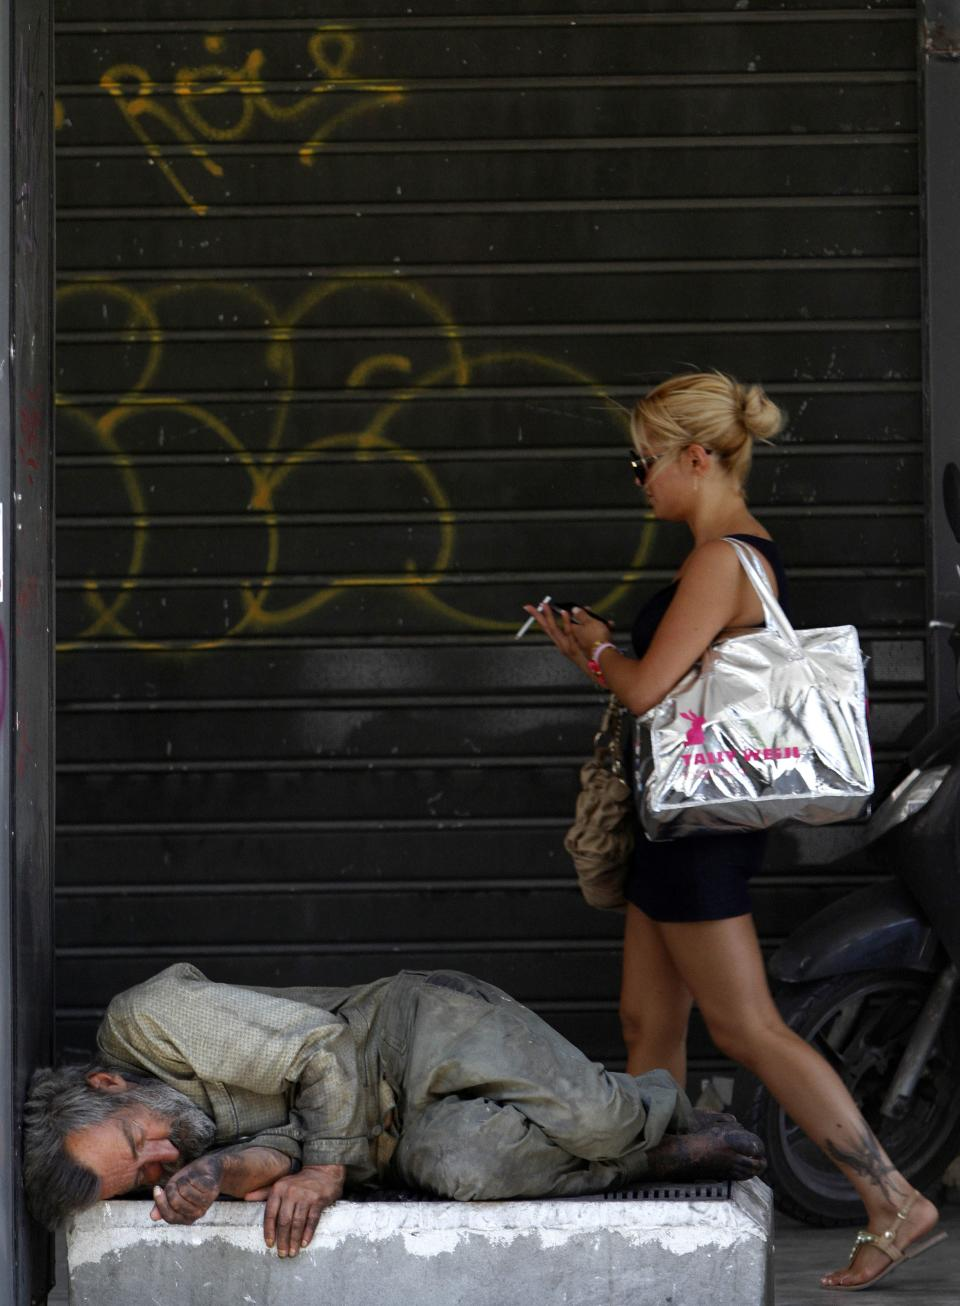 A homeless man sleeps on the ground as a woman passes by in central Athens, Saturday, June 16, 2012. Greeks cast their ballots this Sunday for the second time in six weeks, after May 6 elections left no party with enough seats in Parliament to form a government and coalition talks collapsed.  (AP Photo/Petros Karadjias)